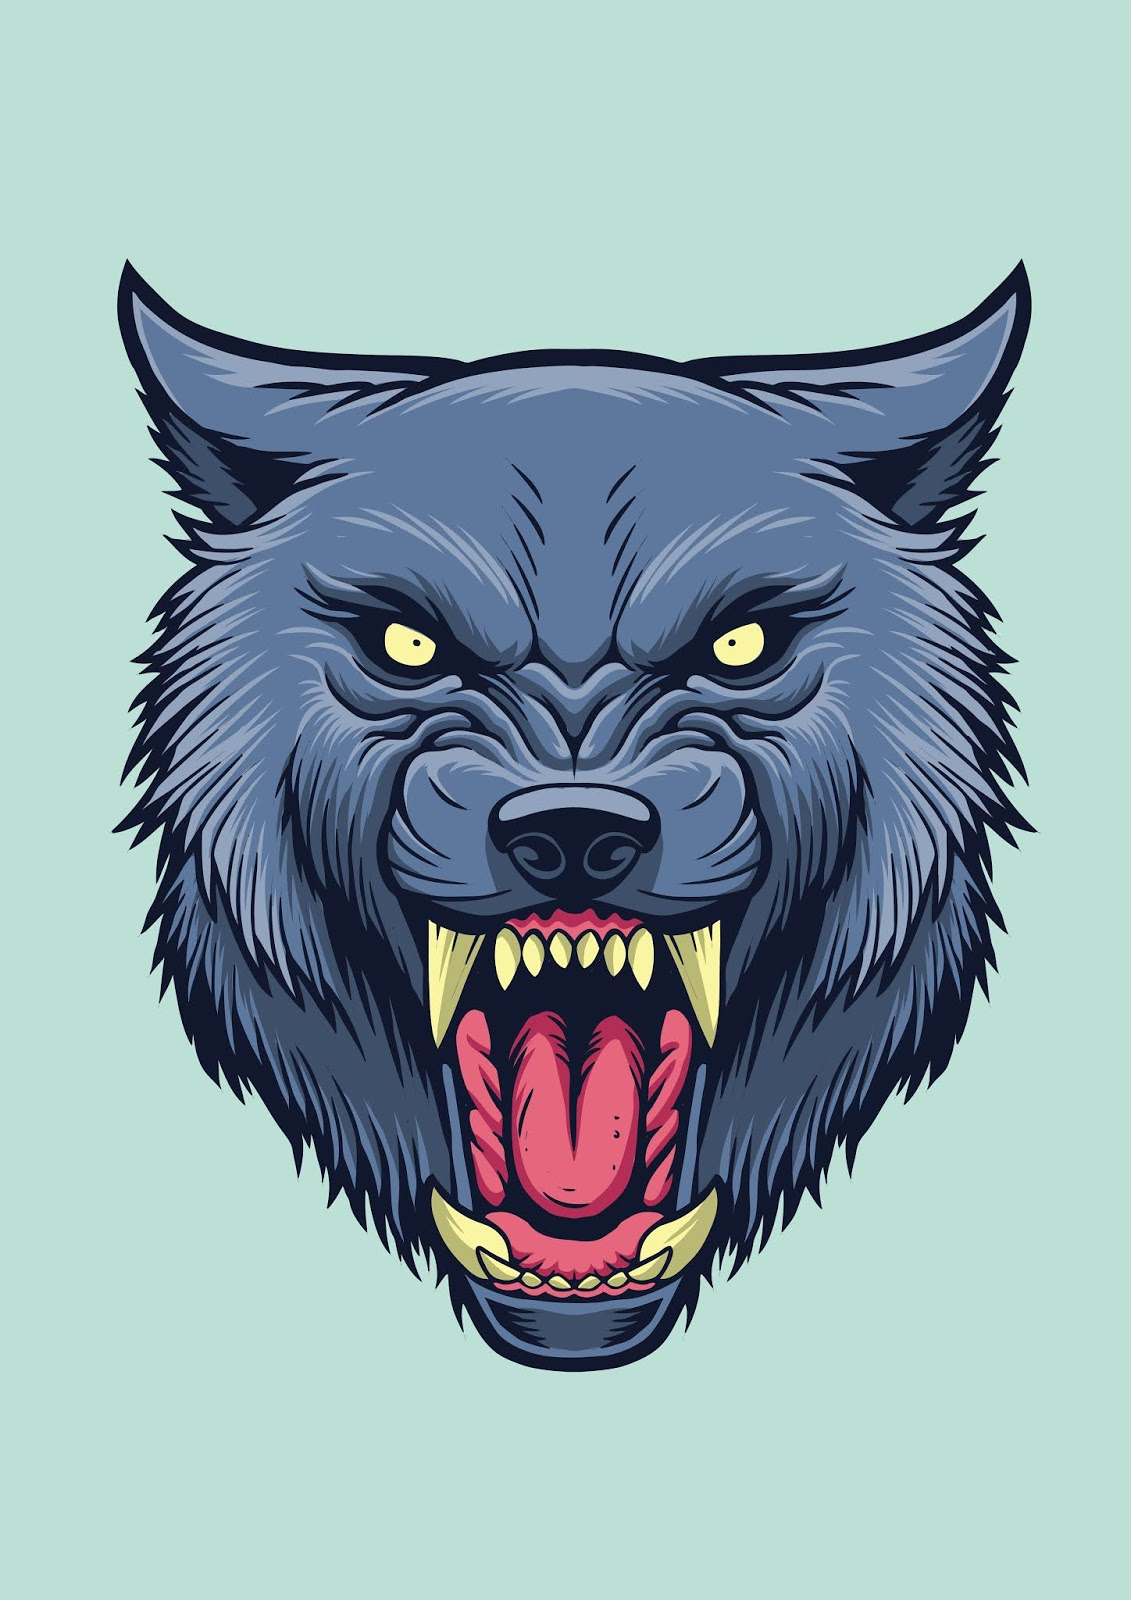 Angry Wolf Head Free Download Vector CDR, AI, EPS and PNG Formats